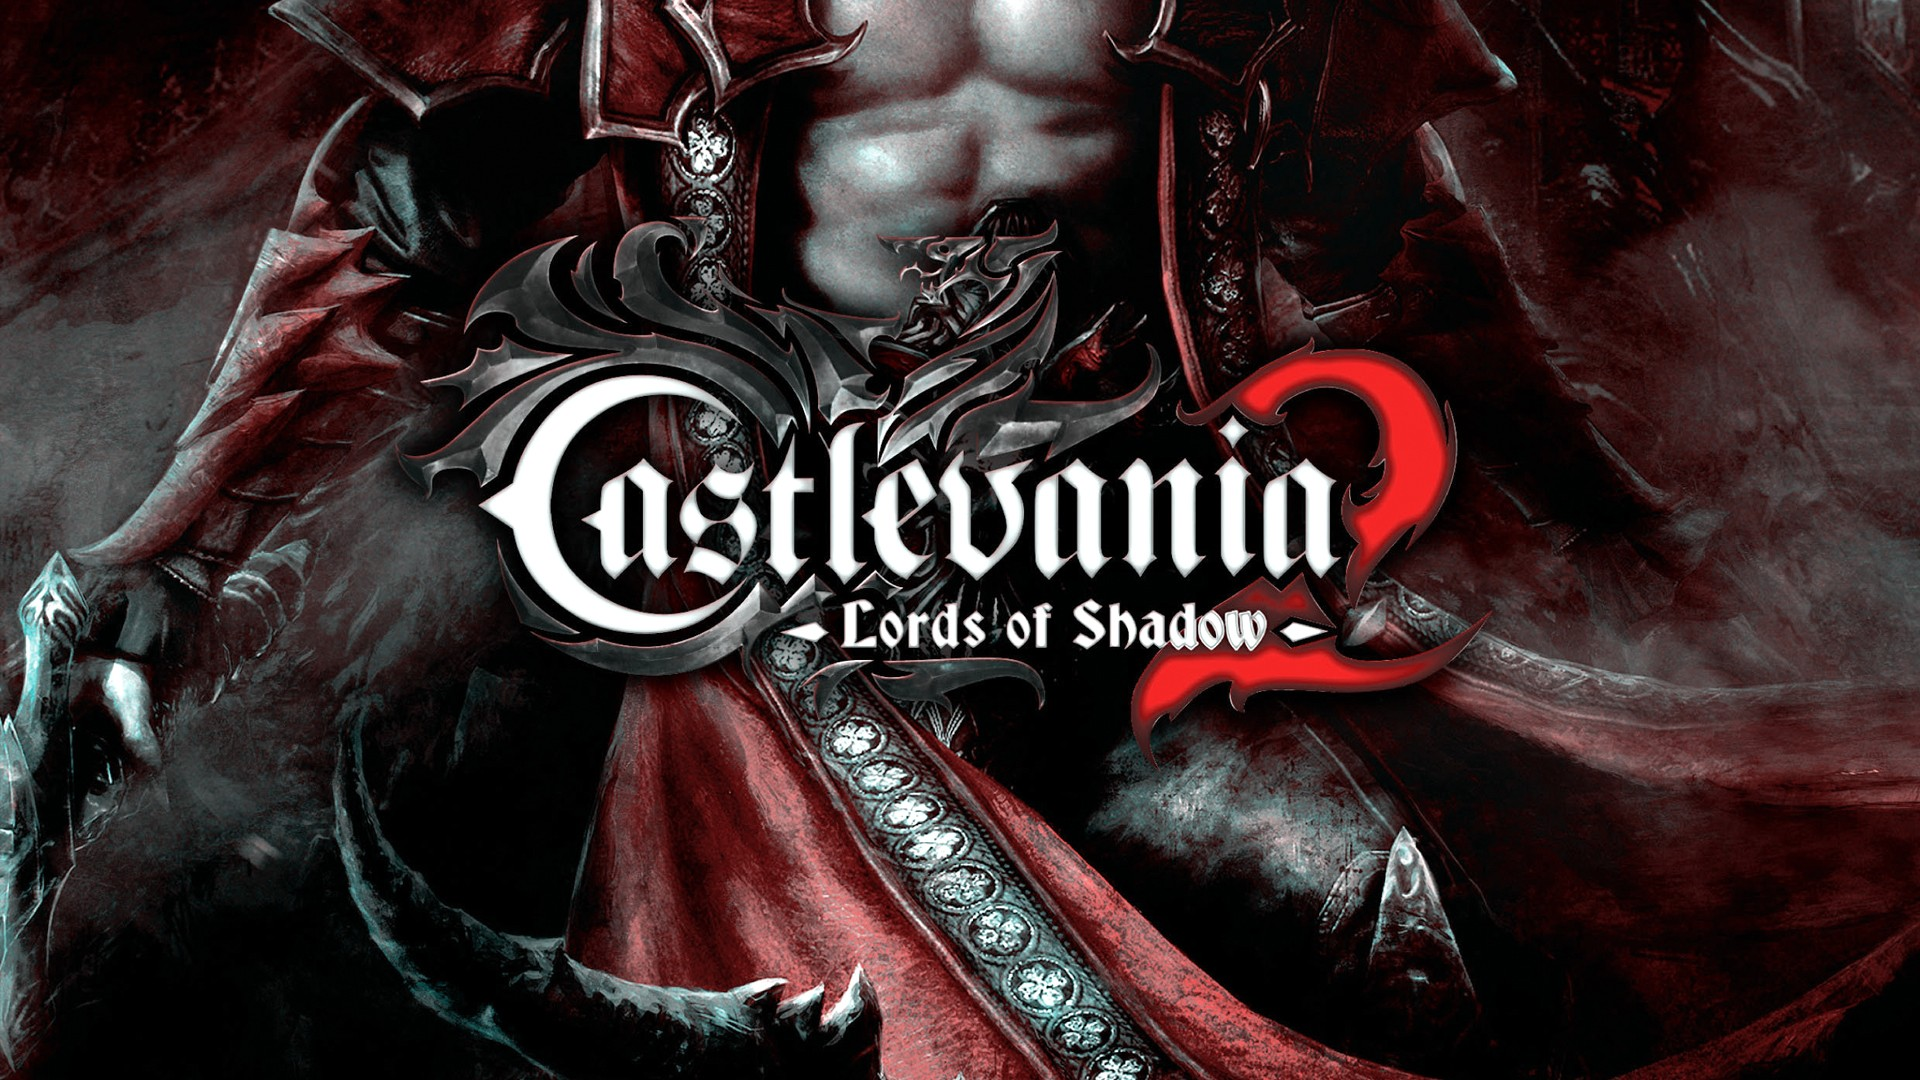 Cool Wallpaper Lord Shadows - castlevania_lords_of_shadow_2-1  You Should Have_619864.jpg